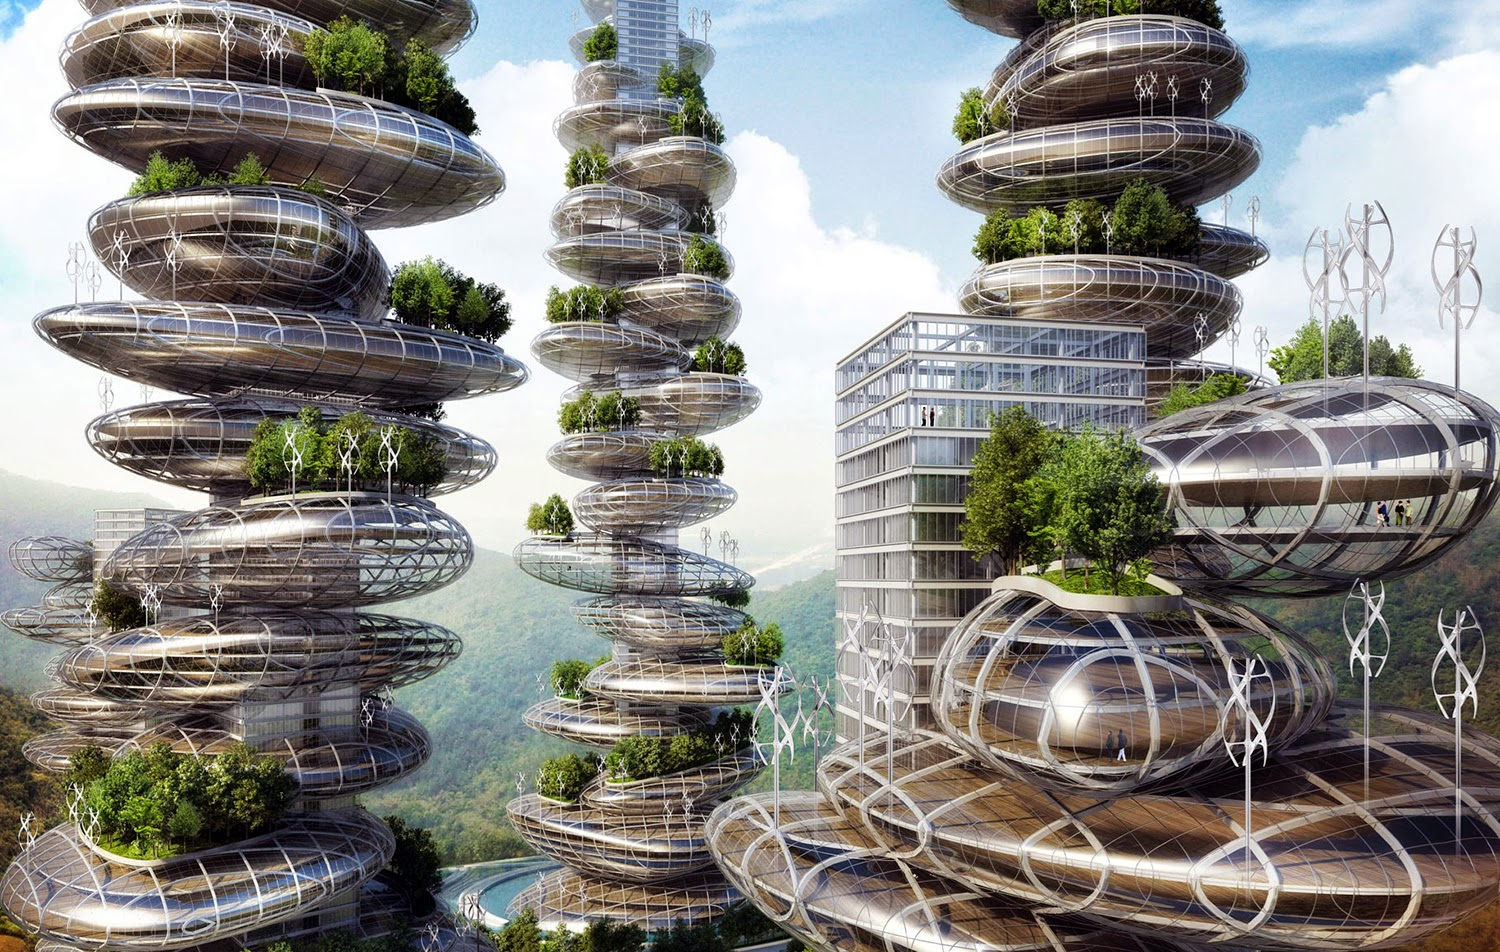 Asian cains de Vincent Callebaut